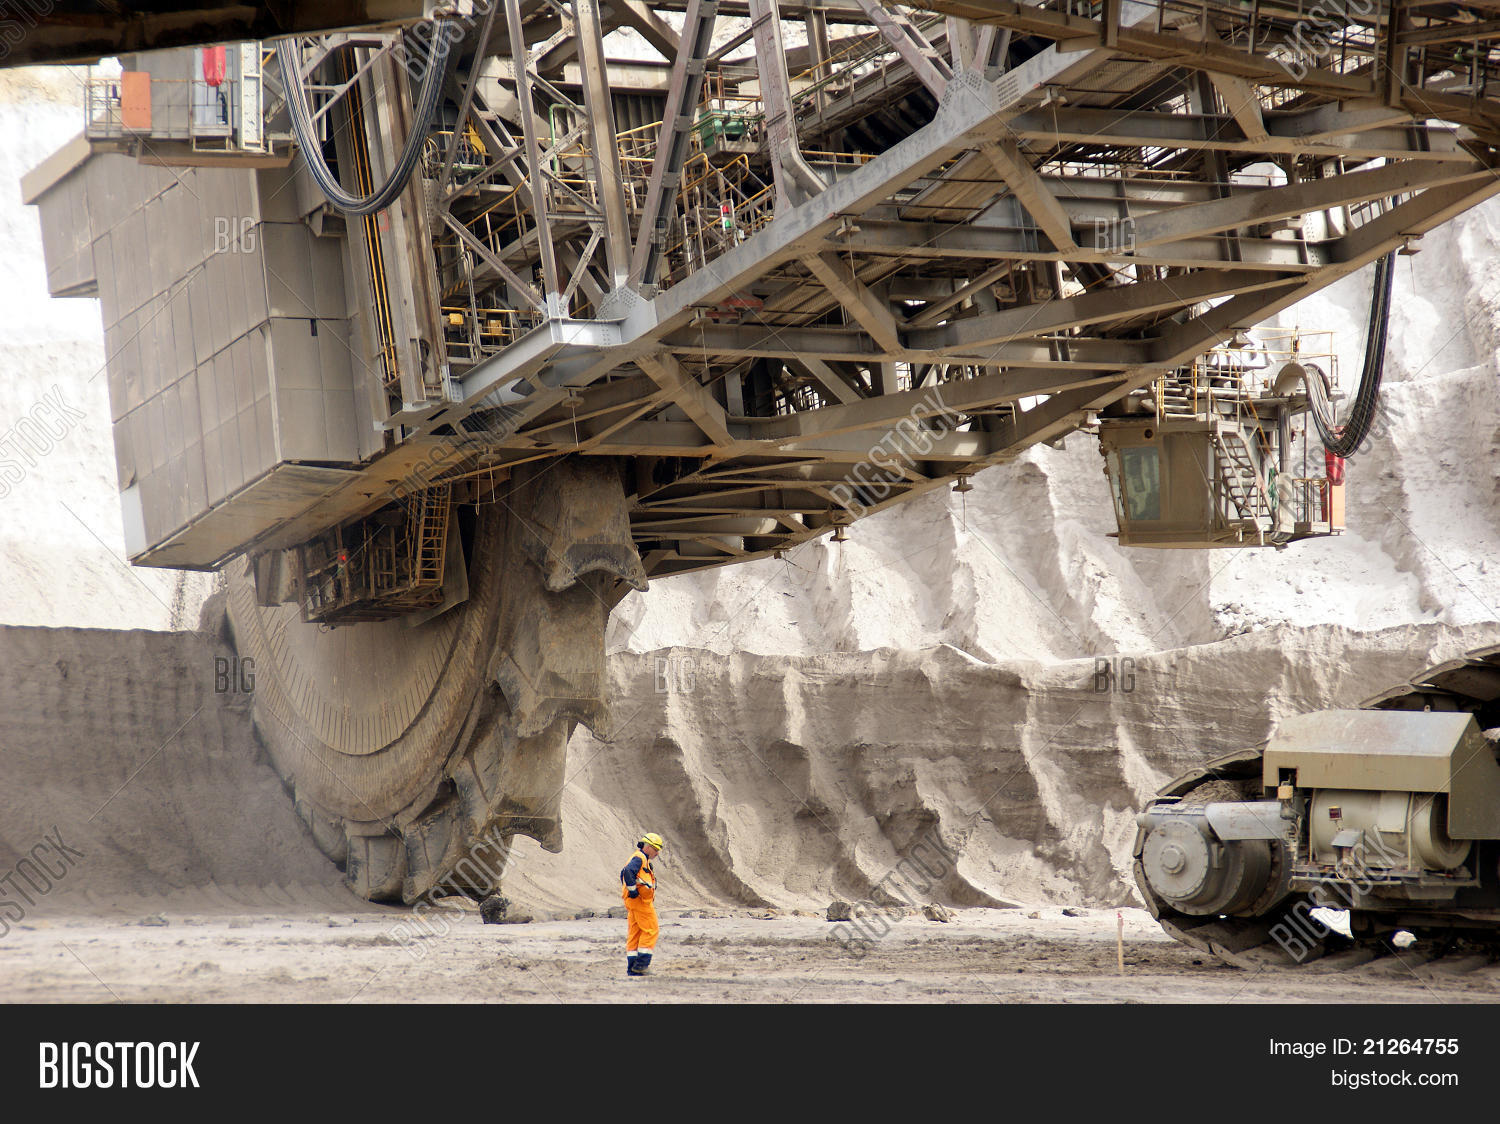 Bucket Wheel Excavator Image Photo Free Trial Bigstock